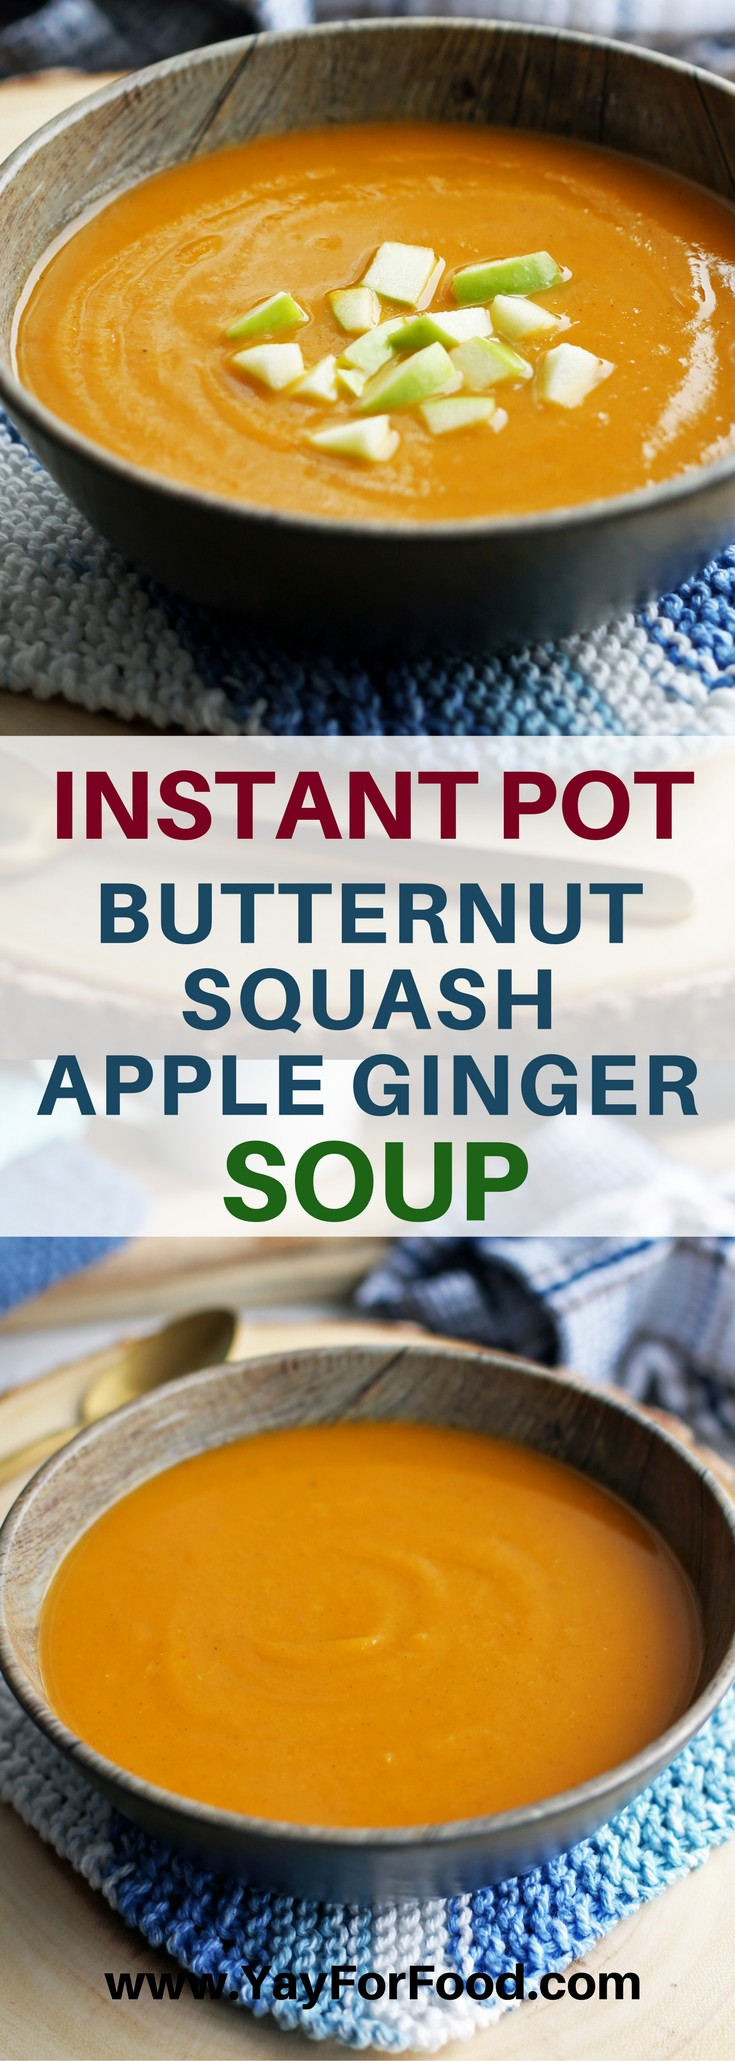 Warm up with a hot bowl of delicious and healthy Butternut Squash Apple Ginger Soup! It's vegan and gluten-free too.